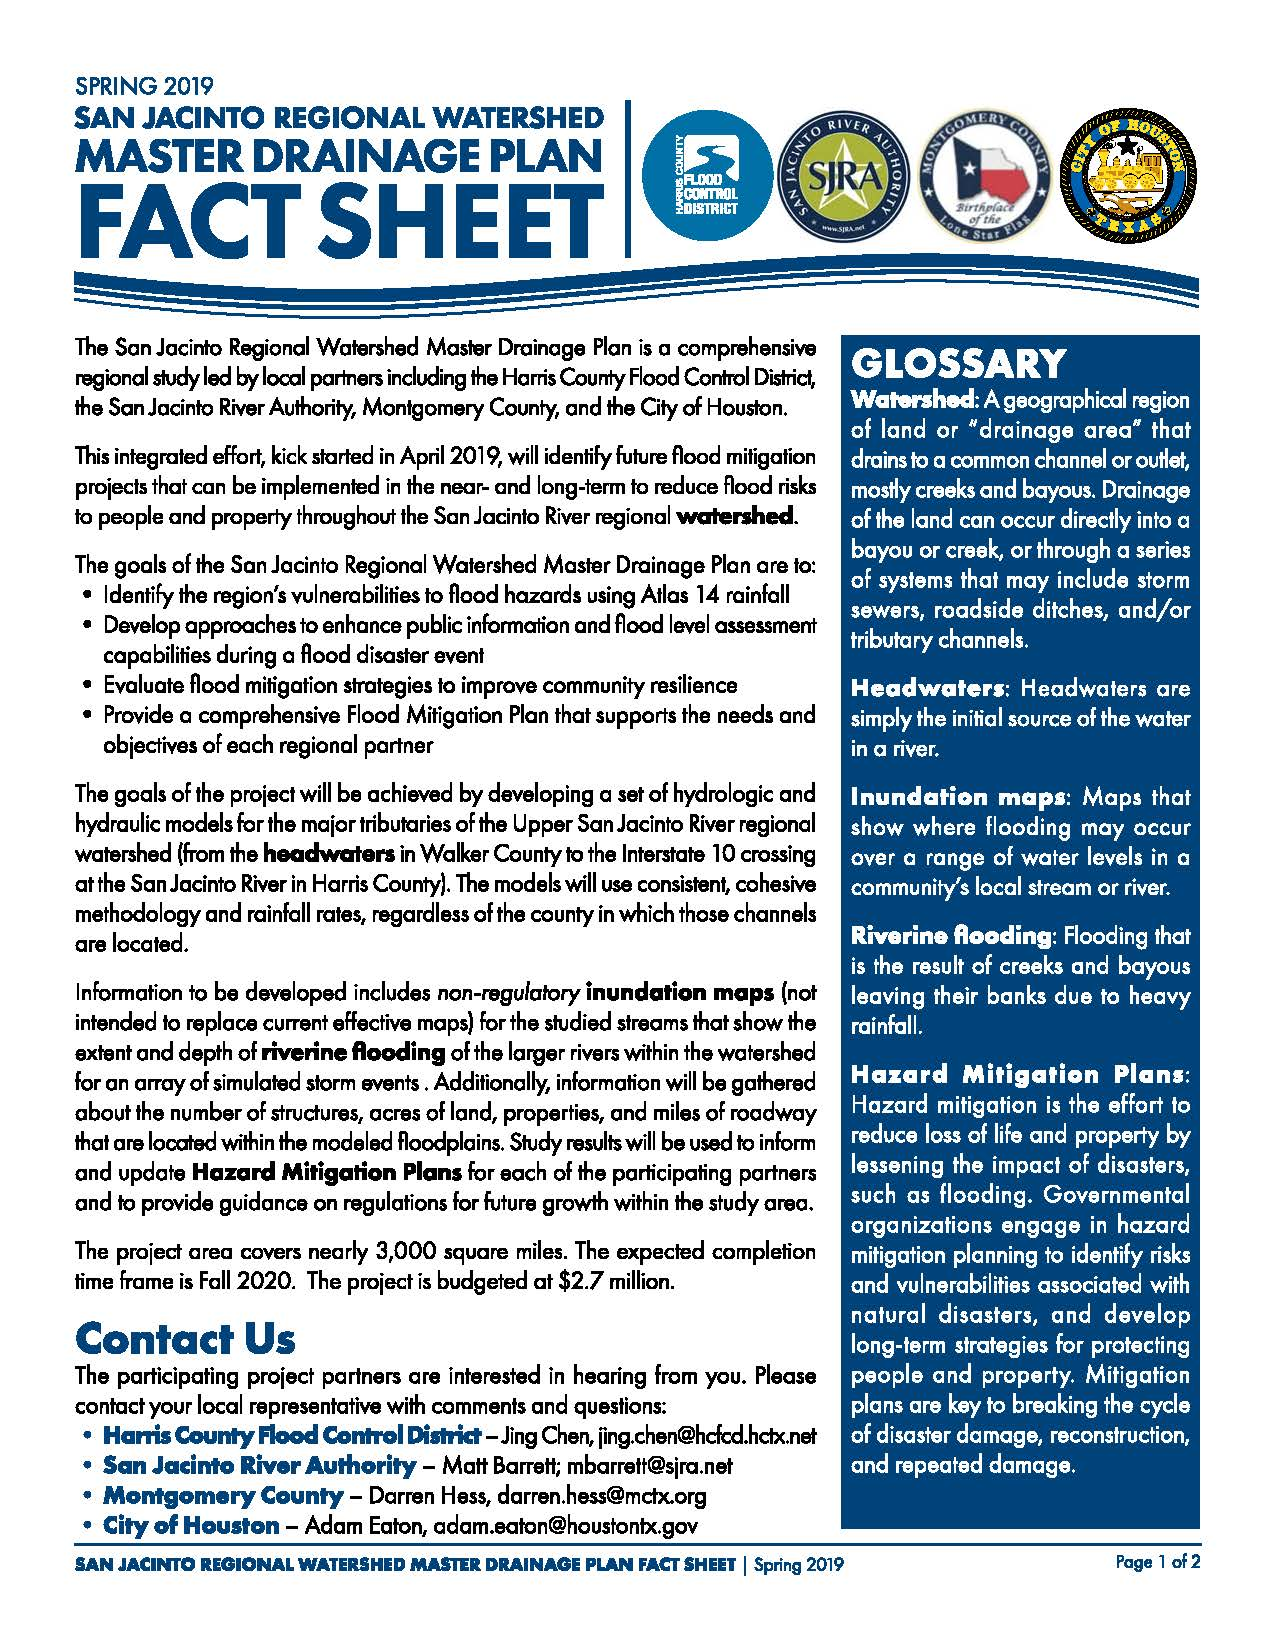 SJ Regional Watershed Master Drainage Plan Fact Sheet_Spring 2019_Page_1